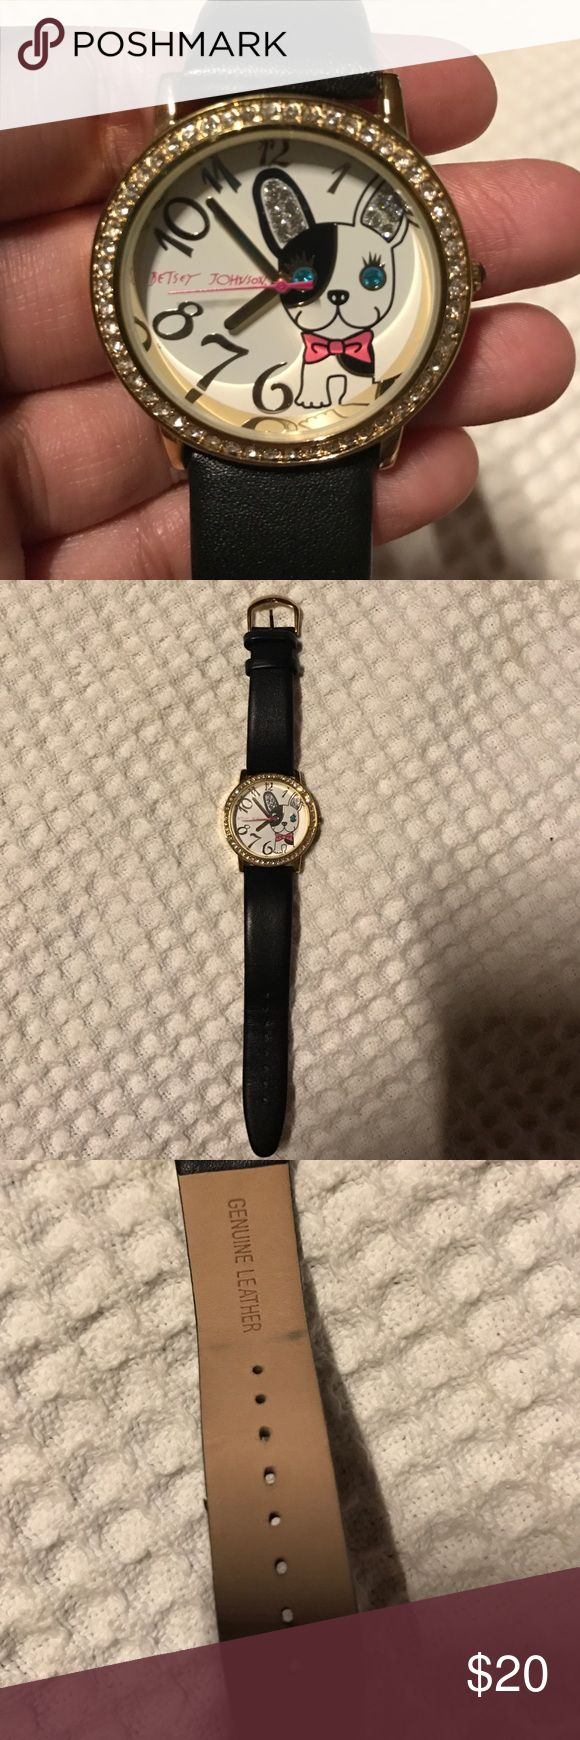 Betsey Johnson watch Adorable French bulldog watch. Needs new battery. Slight wear in leather band. Betsey Johnson Accessories Watches